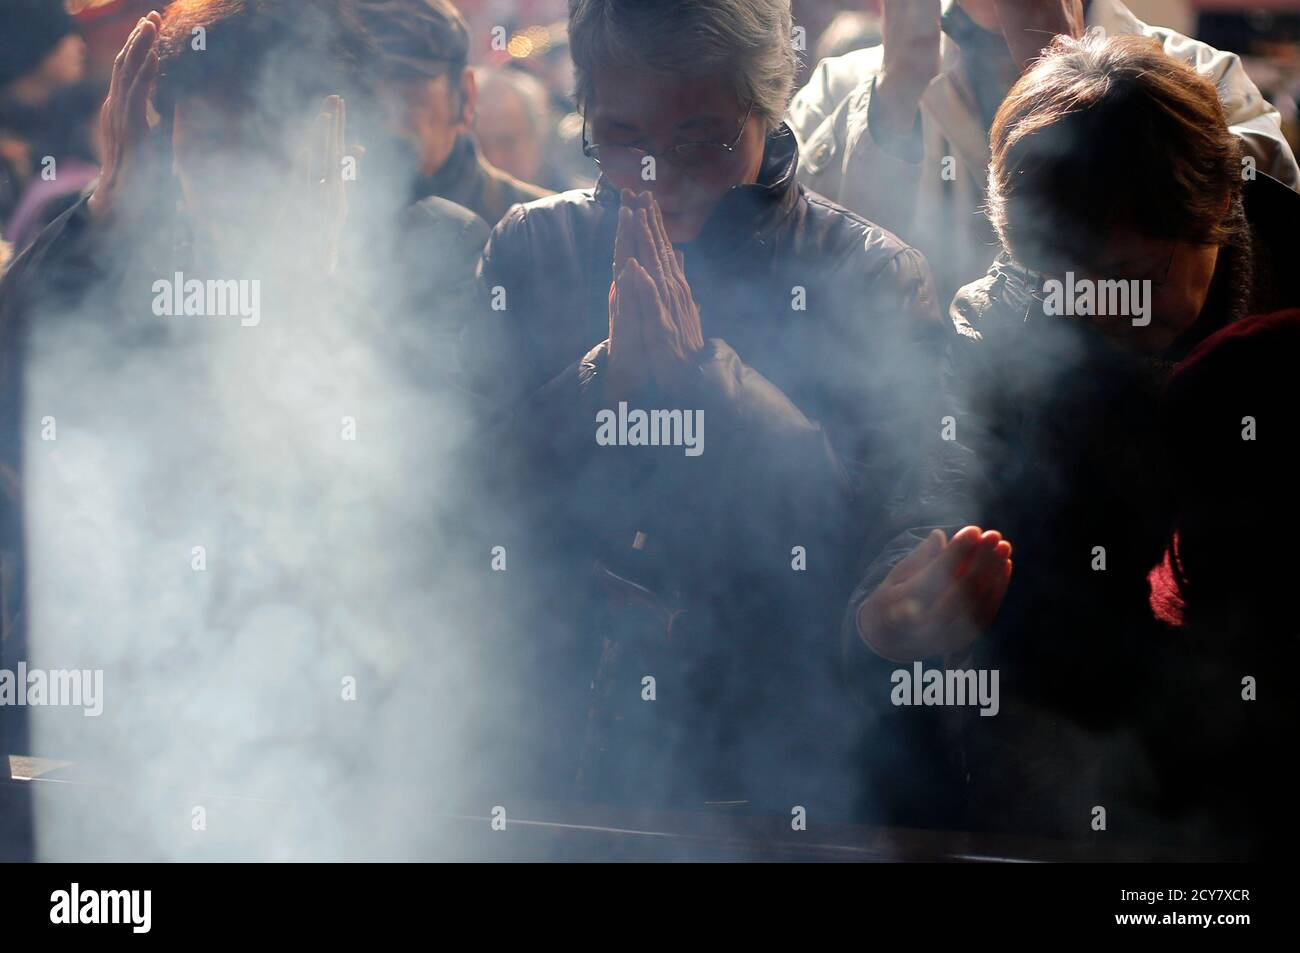 People burn incense as they offer prayers at a temple in Tokyo's Sugamo district, an area popular among the Japanese elderly, in Tokyo January 14, 2015. Japanese Prime Minister Shinzo Abe's cabinet approved on Wednesday a record $812 billion budget for the coming fiscal year while cutting new borrowing for a third straight year in a bid to balance growth and fiscal reform. The largest budget item, social welfare spending, will rise 1 trillion yen to a record 31.53 trillion yen.  REUTERS/Toru Hanai (JAPAN - Tags: SOCIETY BUSINESS POLITICS RELIGION) Stock Photo